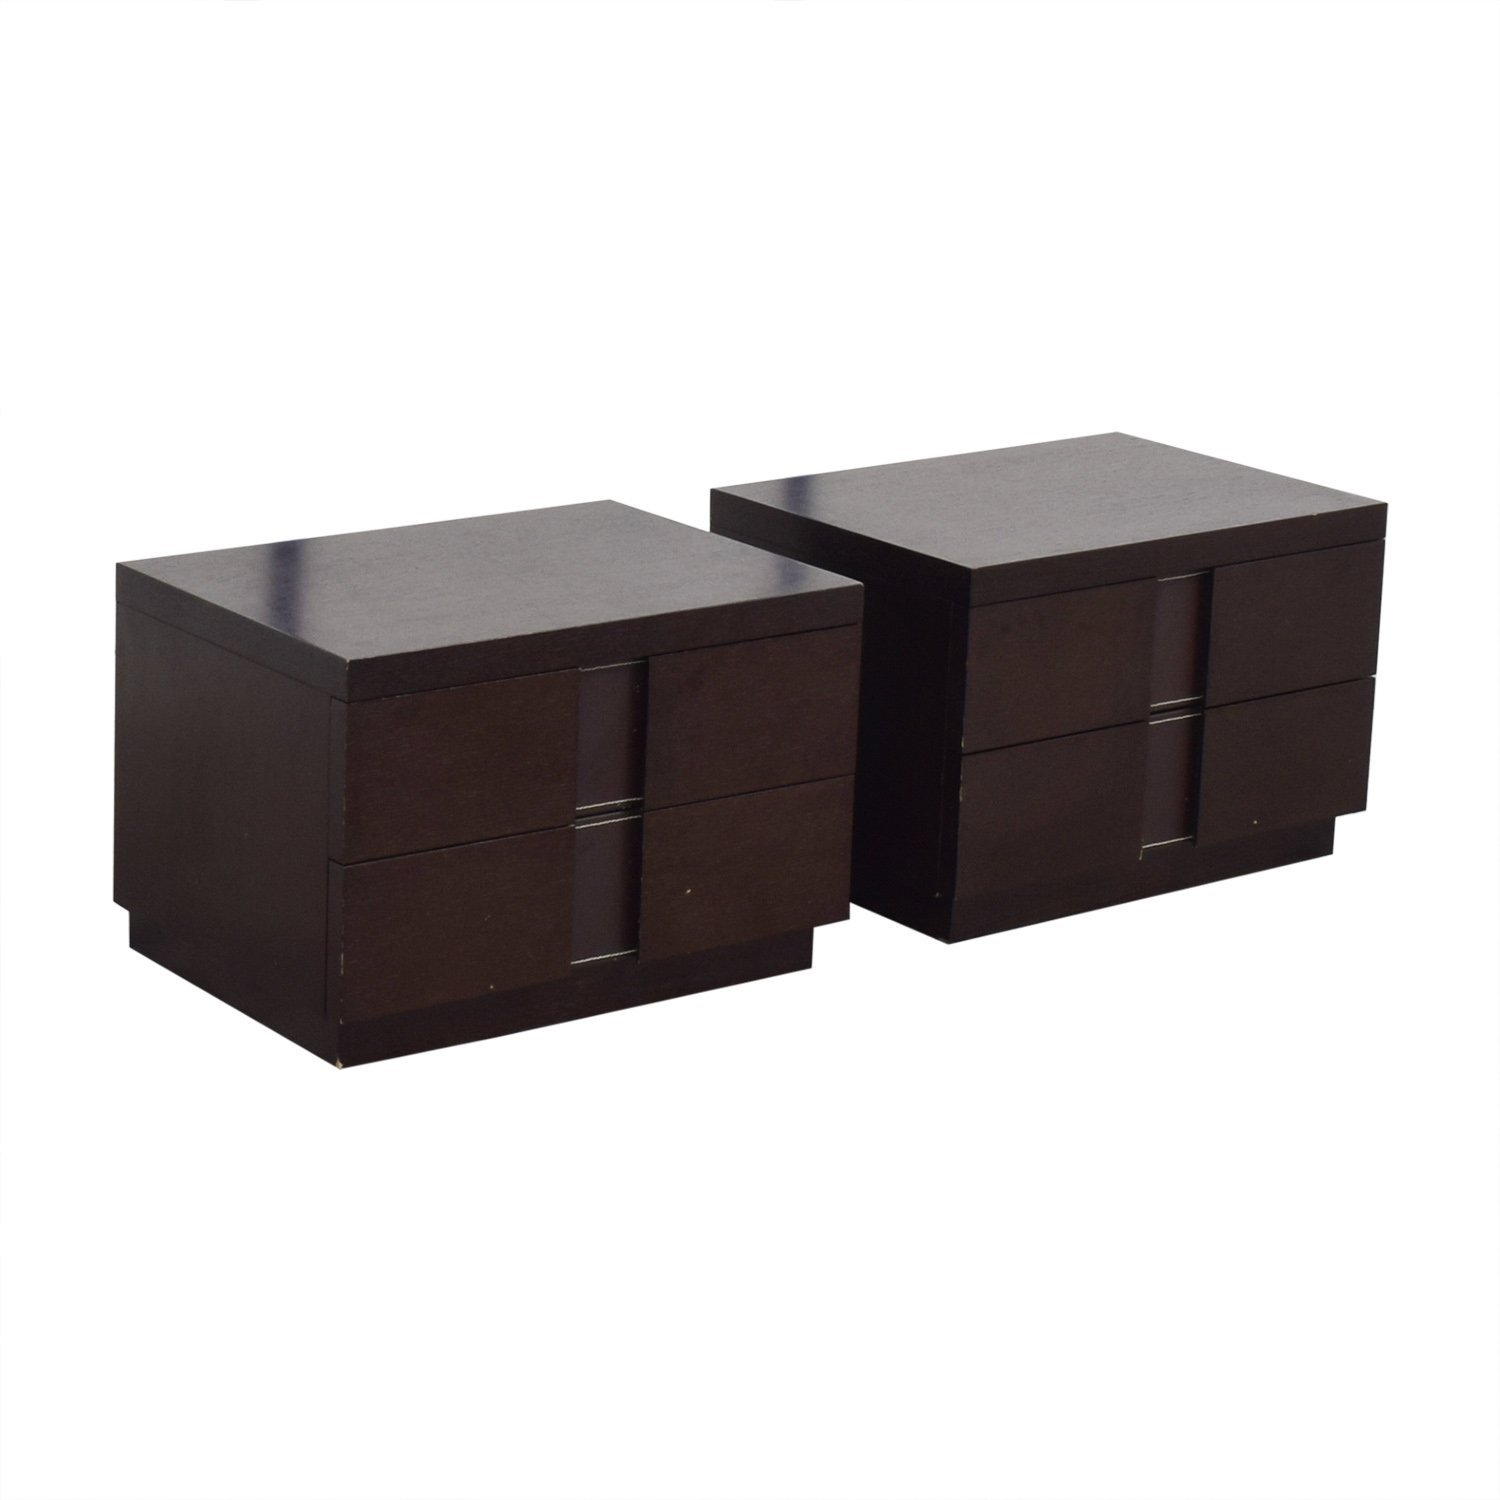 J&M Furniture Two Drawer Nightstands sale